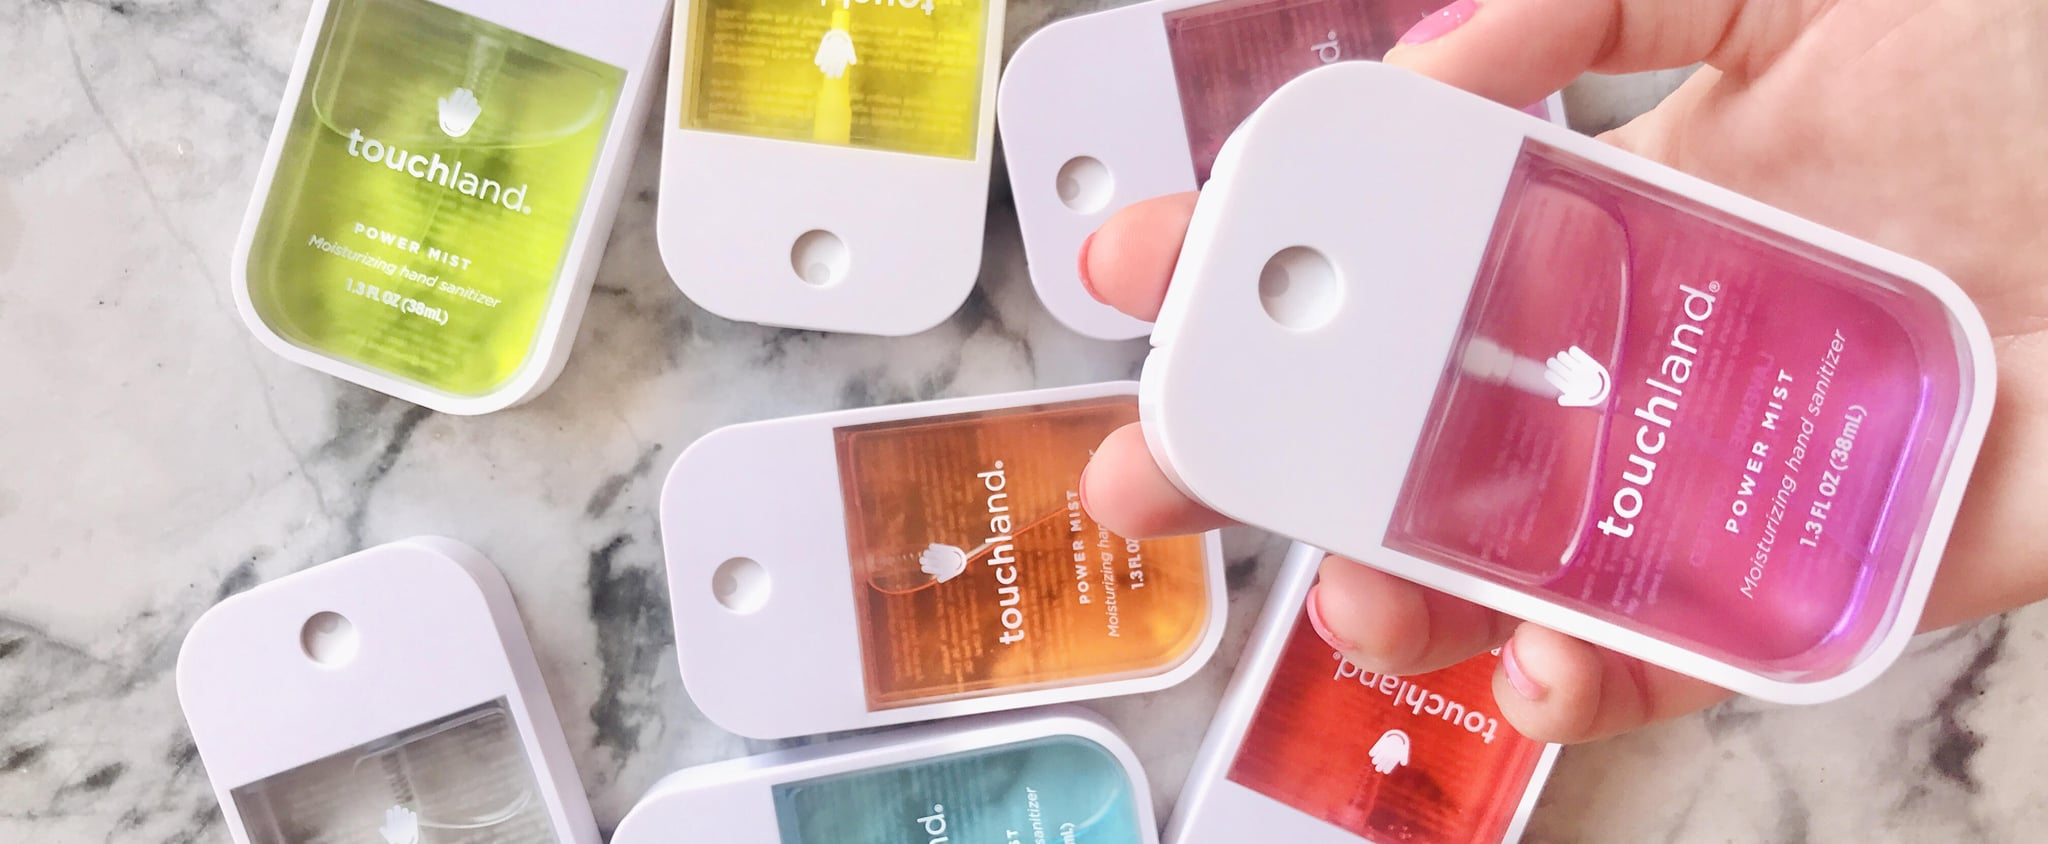 Touchland Hand Sanitizer Review   2021